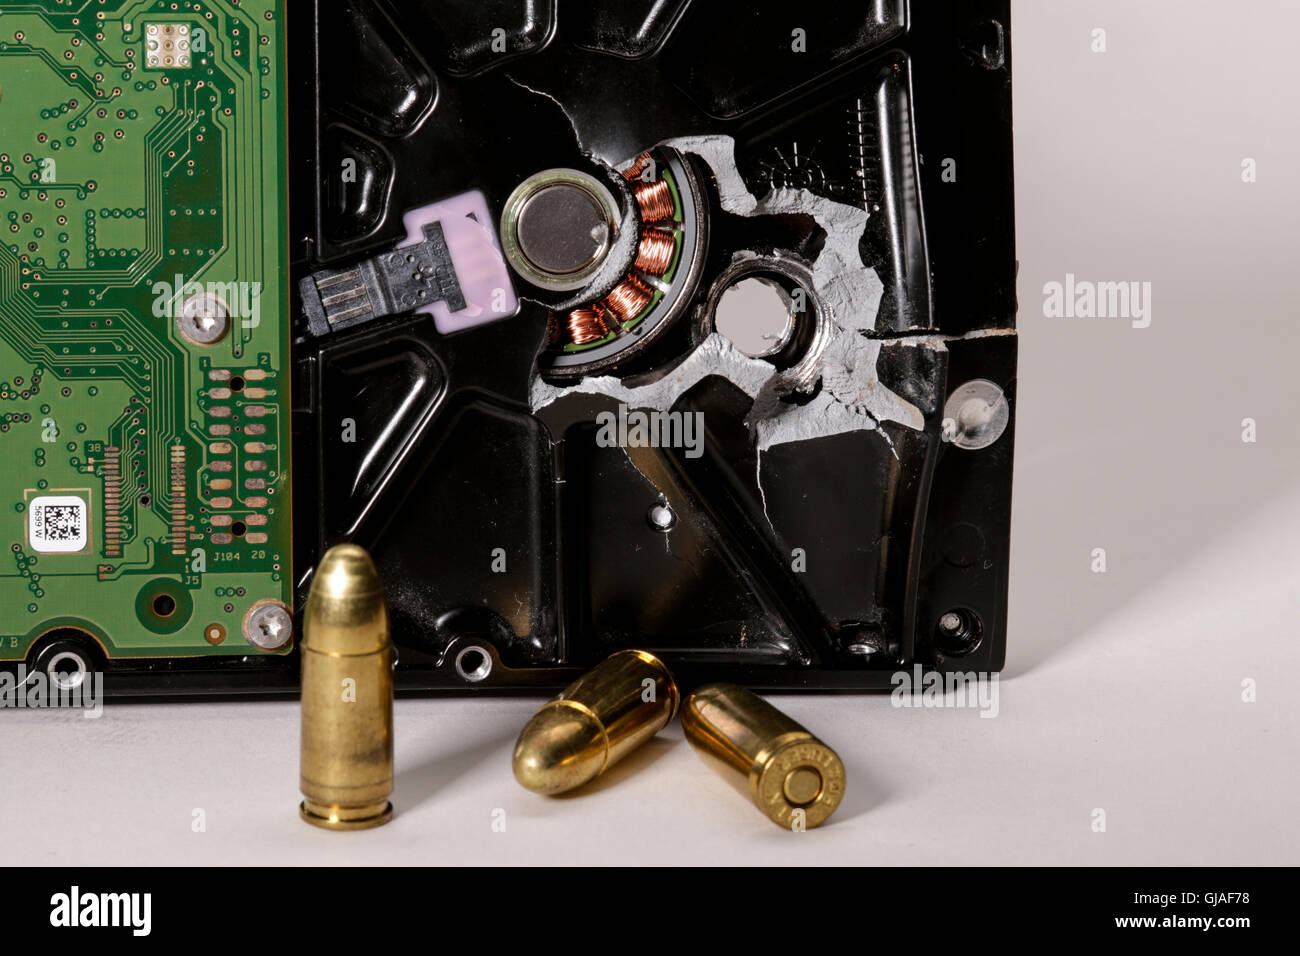 Computer hard drive with bullet hole and 9mm bullets. - Stock Image